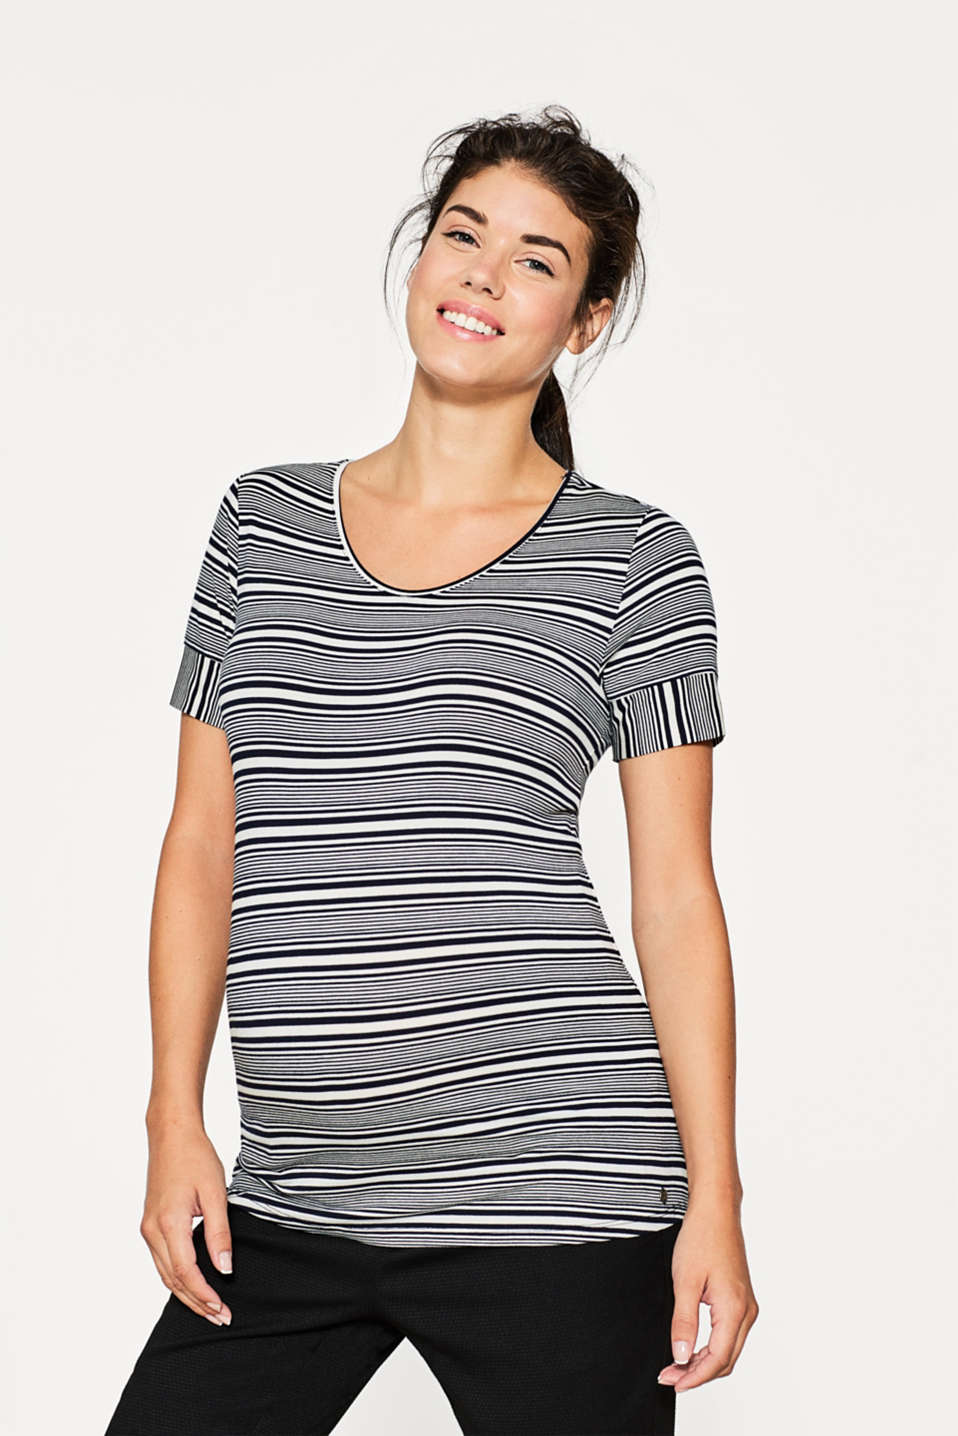 Esprit - Flowing stretch top with new stripes